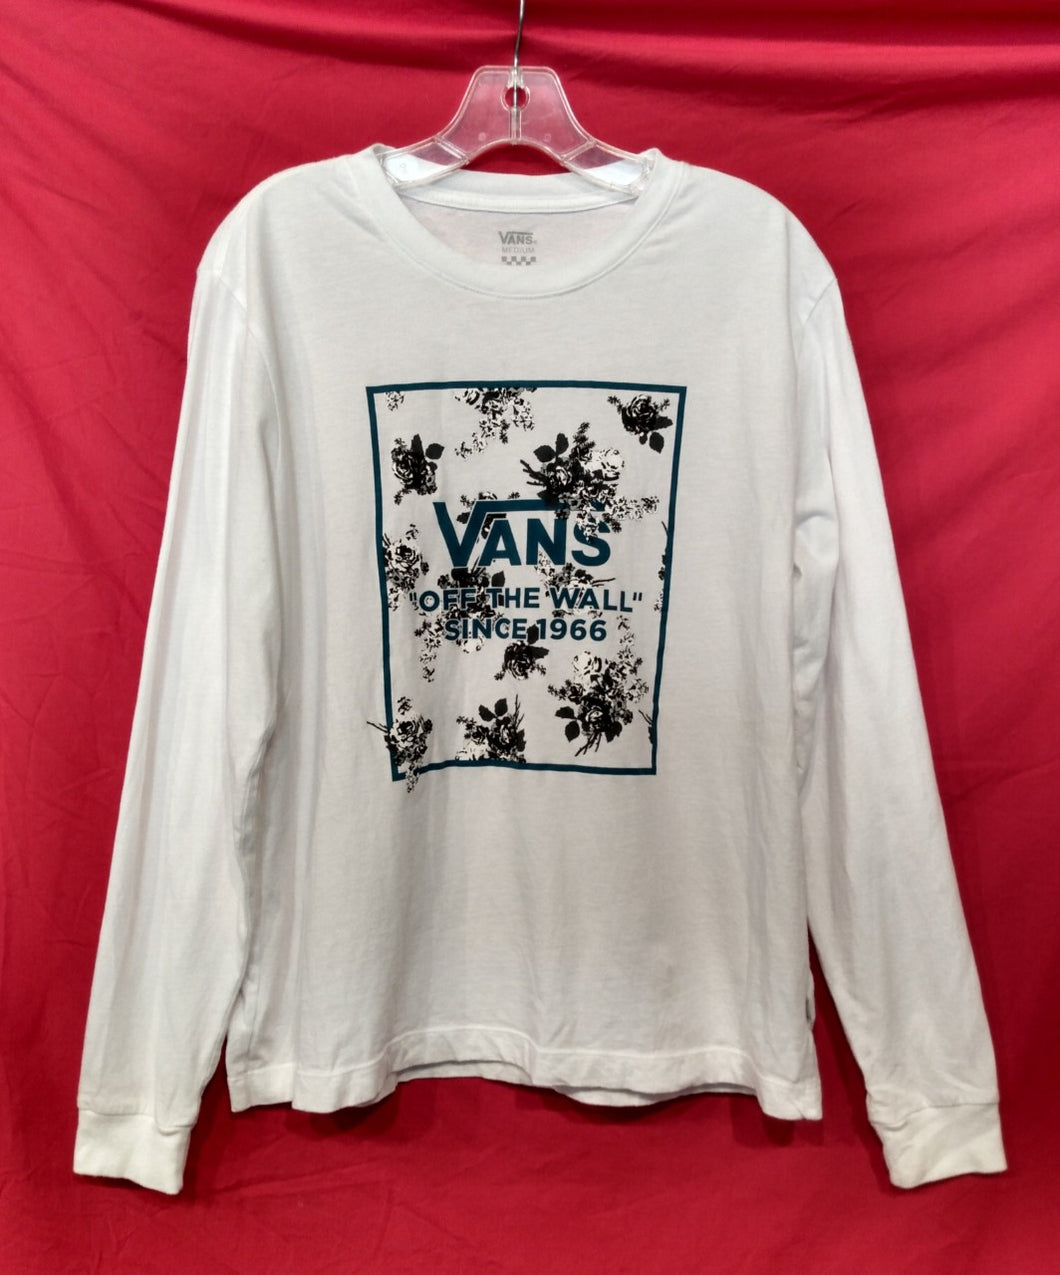 Vans 'Off The Wall' Long Sleeve T-Shirt- Pre-owned